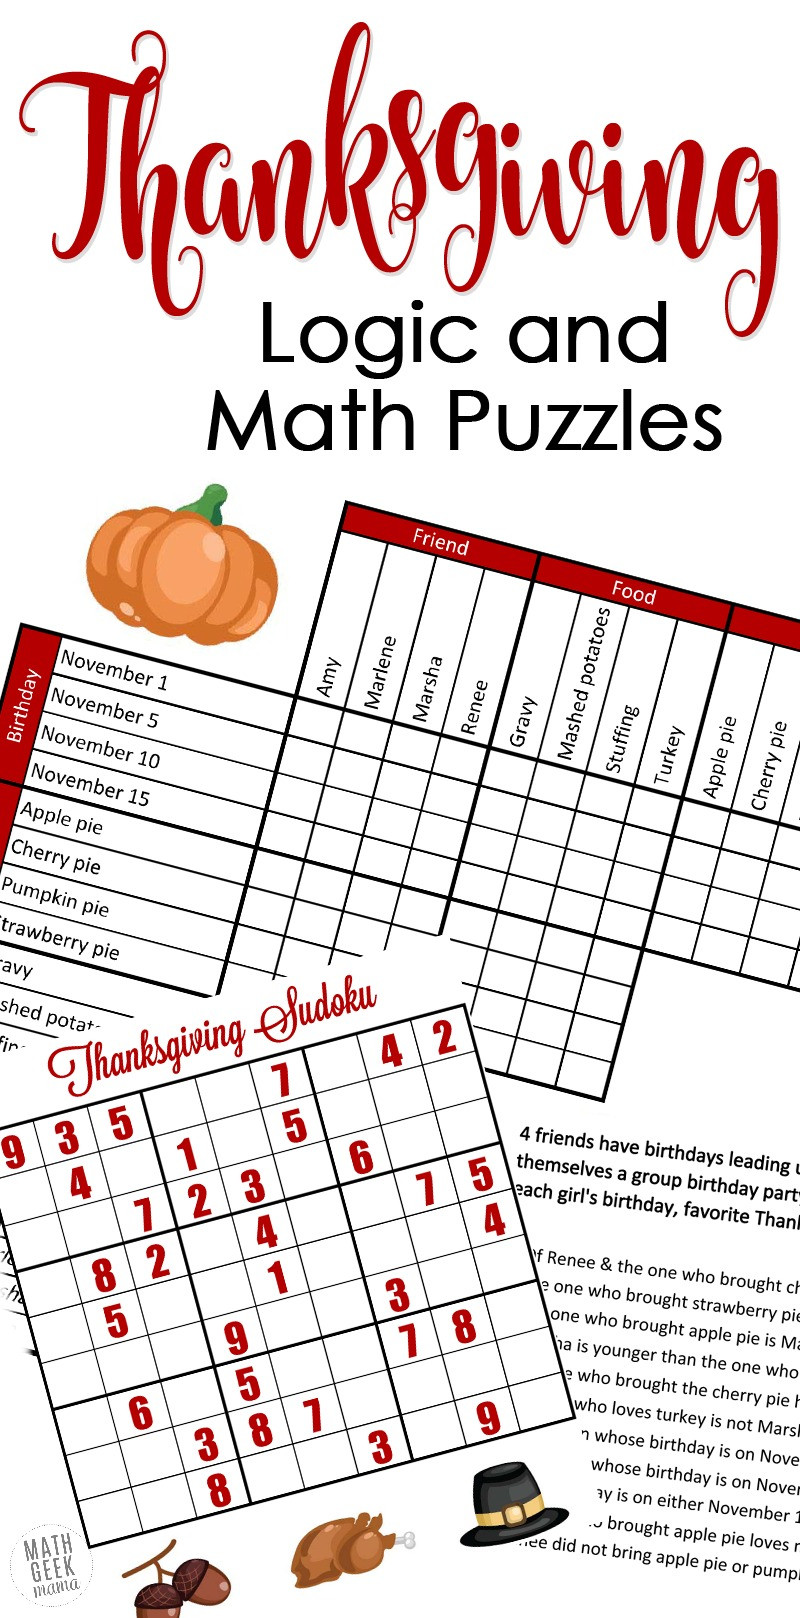 6th Grade Math Puzzles Printable Free Fun Thanksgiving Math Puzzles for Older Kids